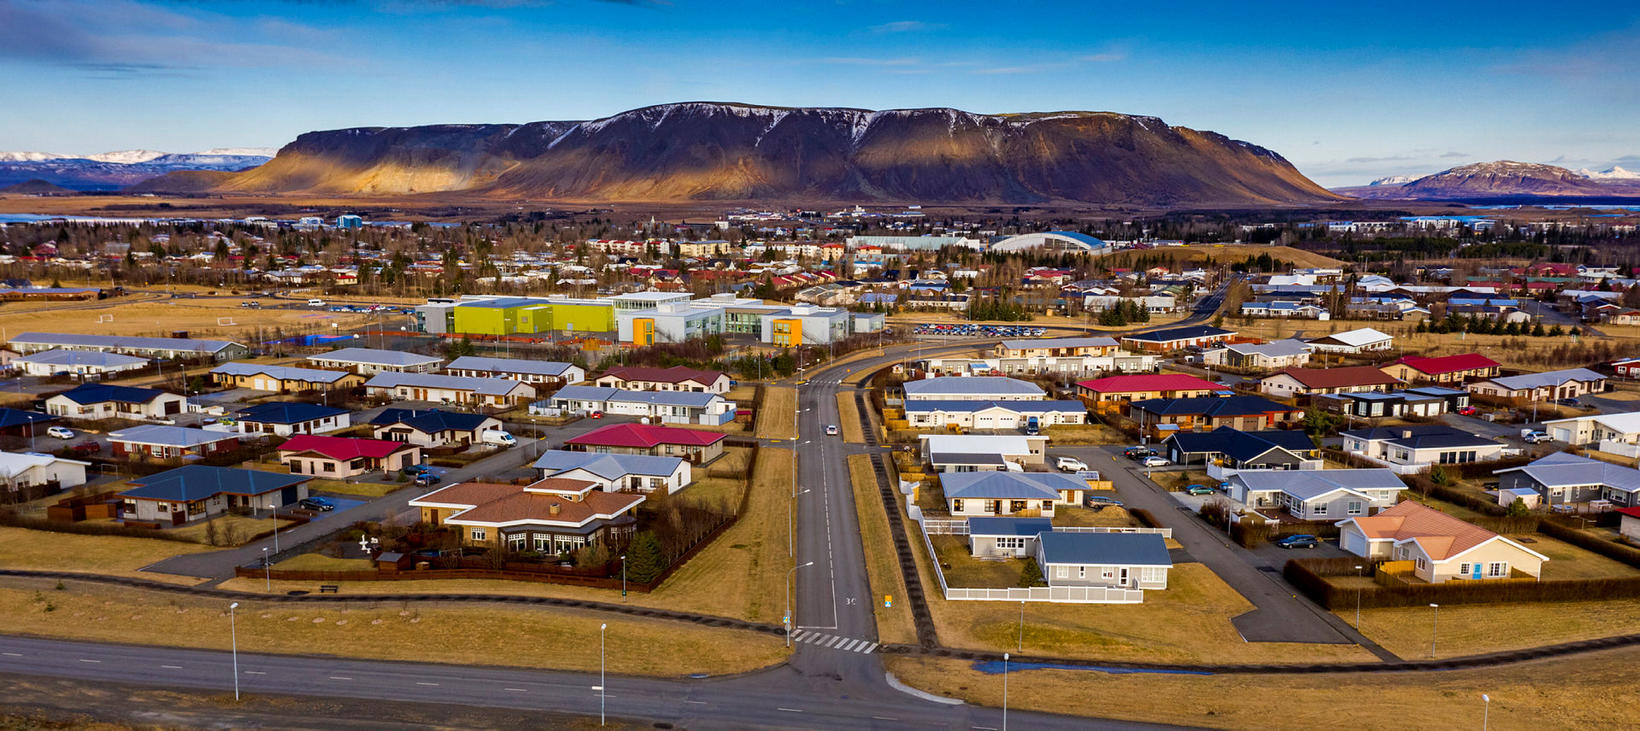 The town of Selfoss, with Ingólfsfjall mountain in the background.